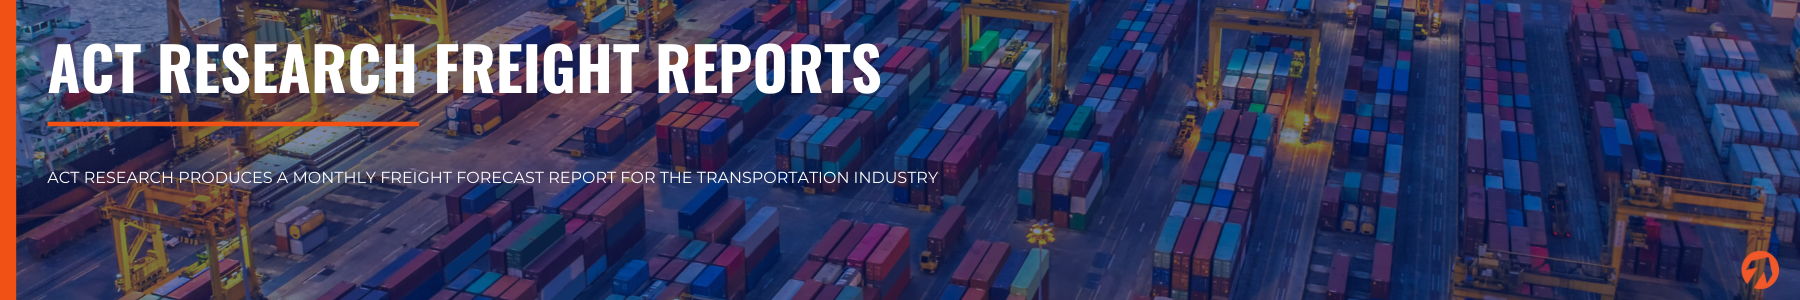 ACT Research Freight